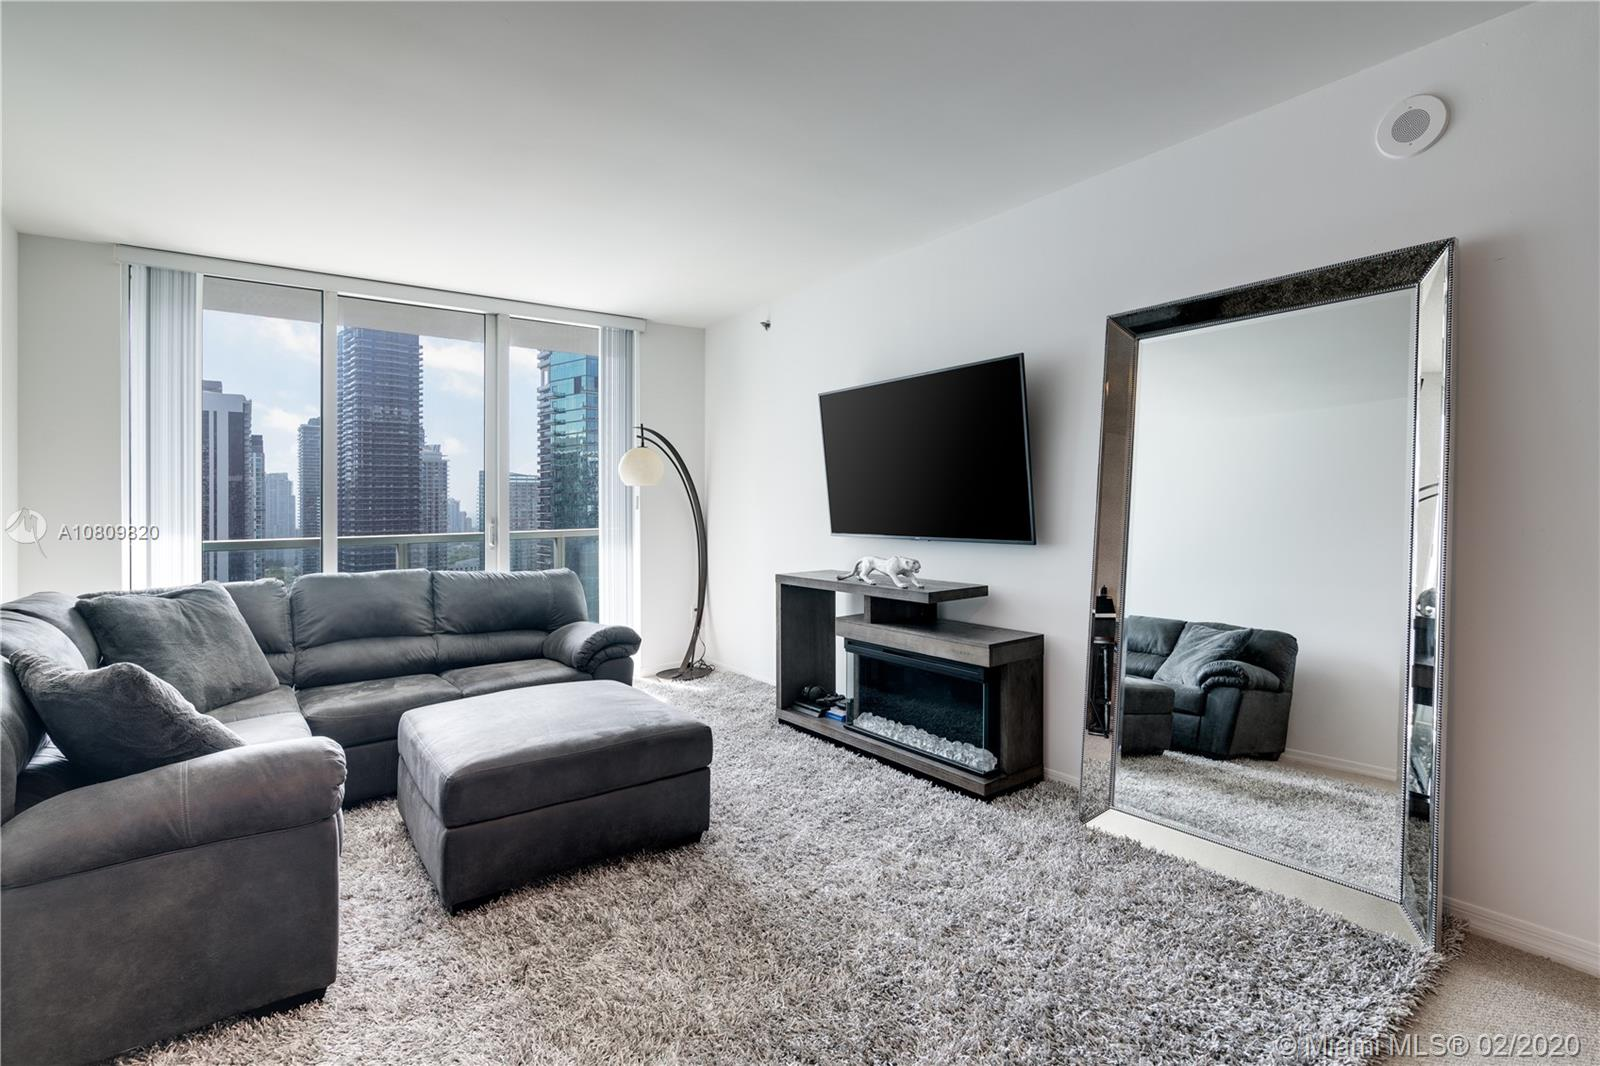 500 Brickell East Tower #3408 - 55 SE 6th St #3408, Miami, FL 33131